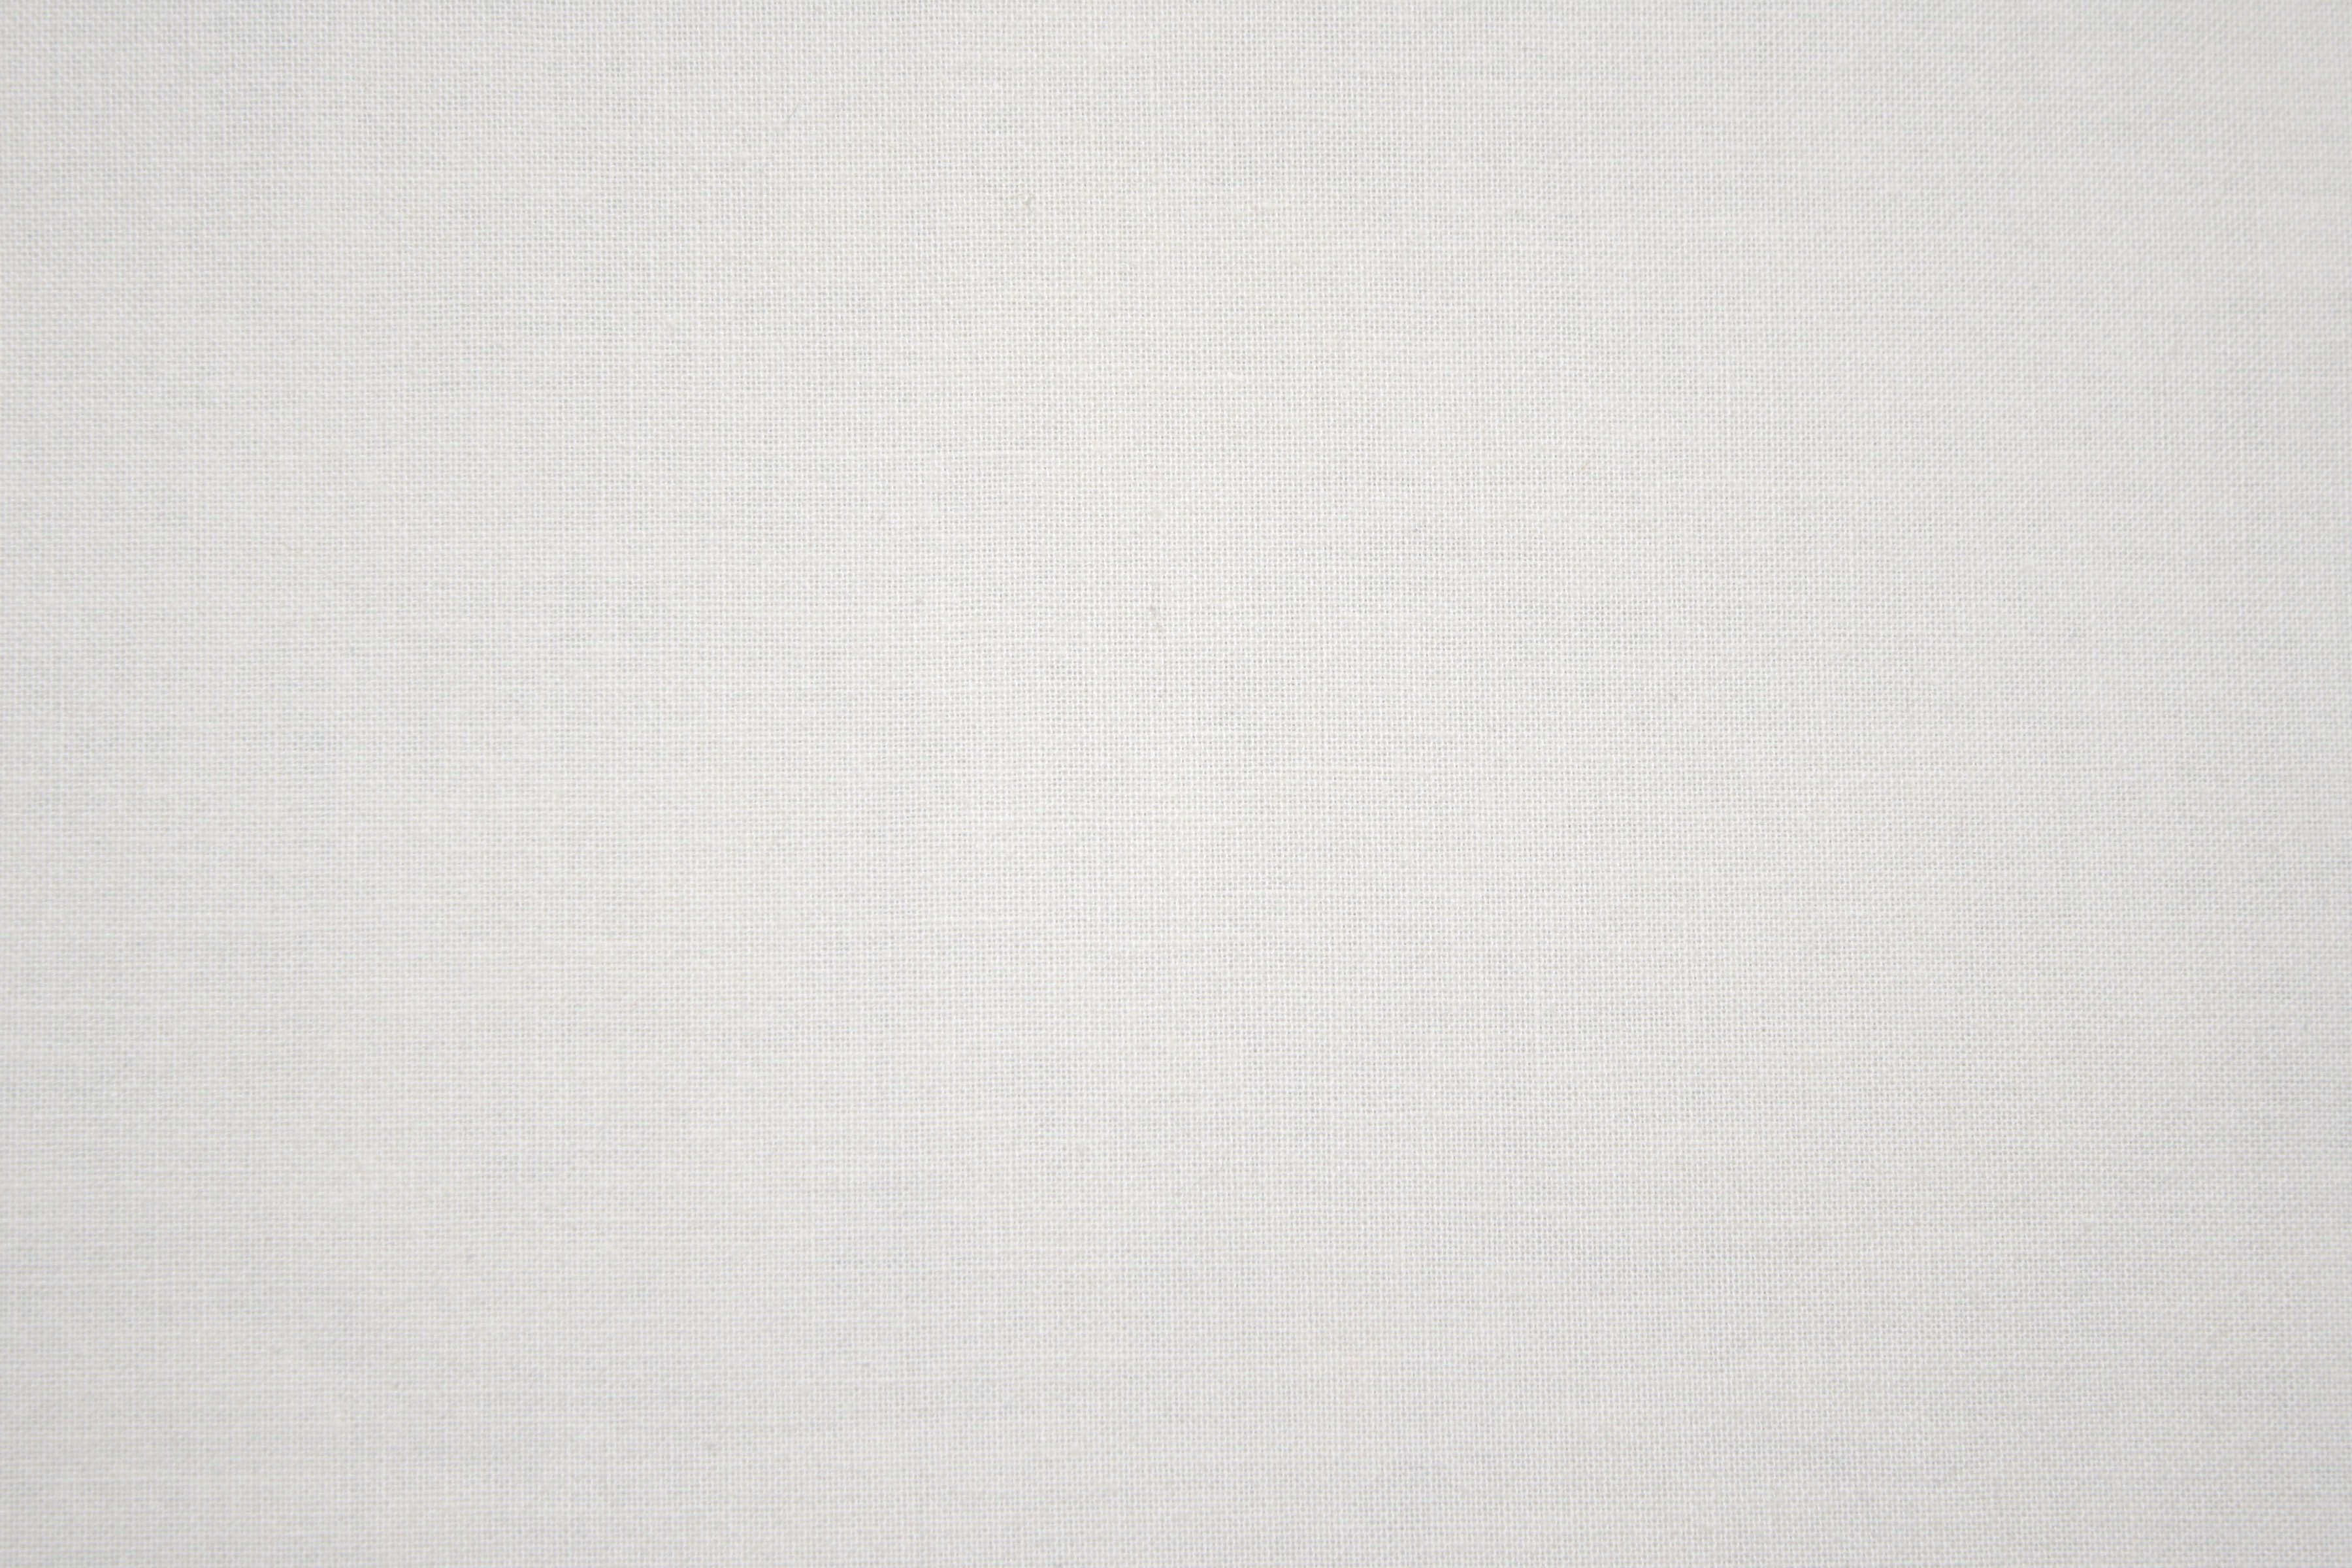 White Canvas Fabric Texture Picture | Free Photograph ...